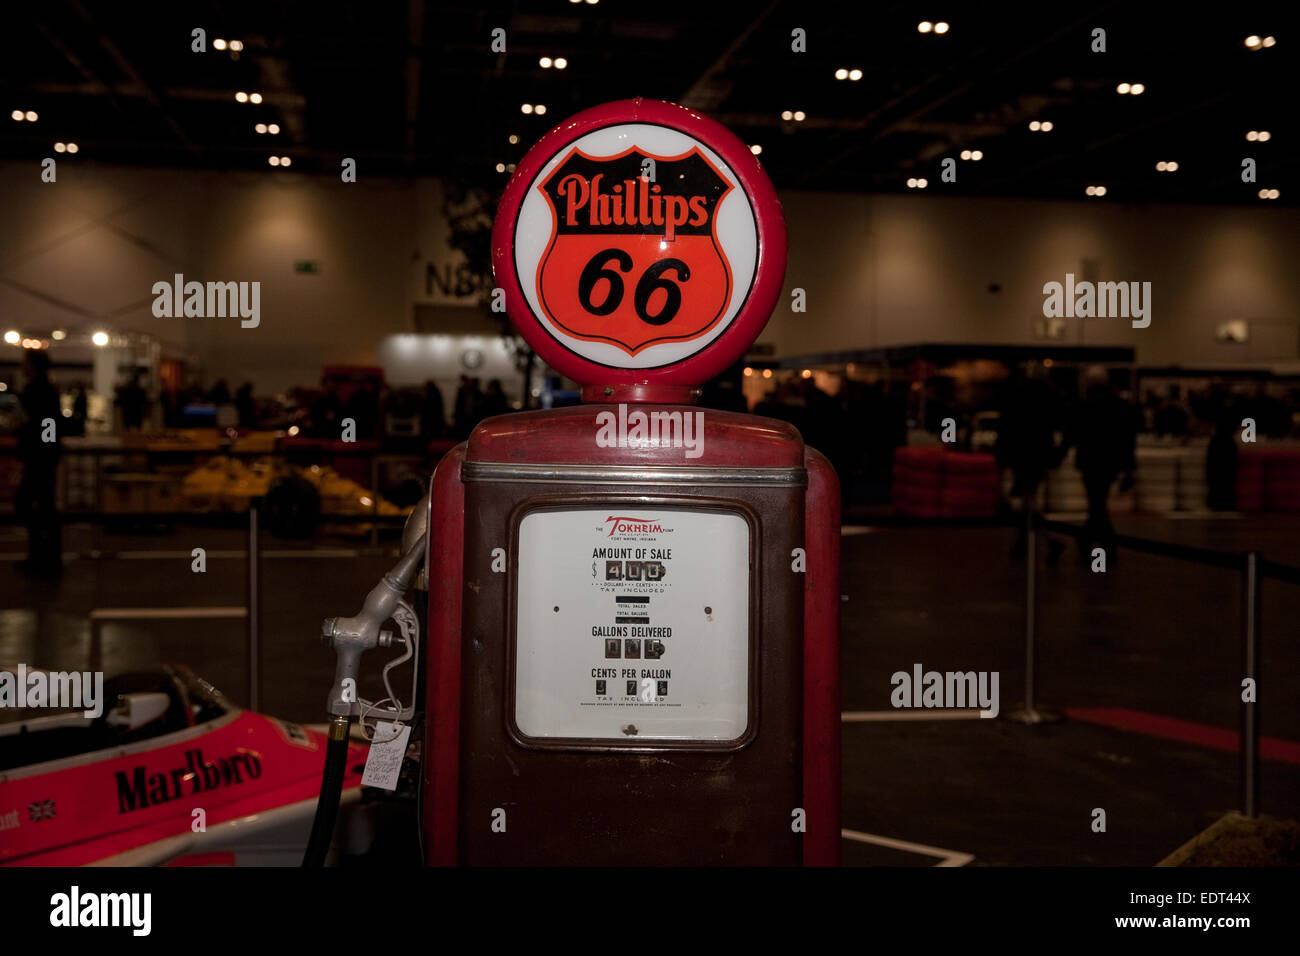 Phillips 66 petrol pump at the London Classic car show Excel